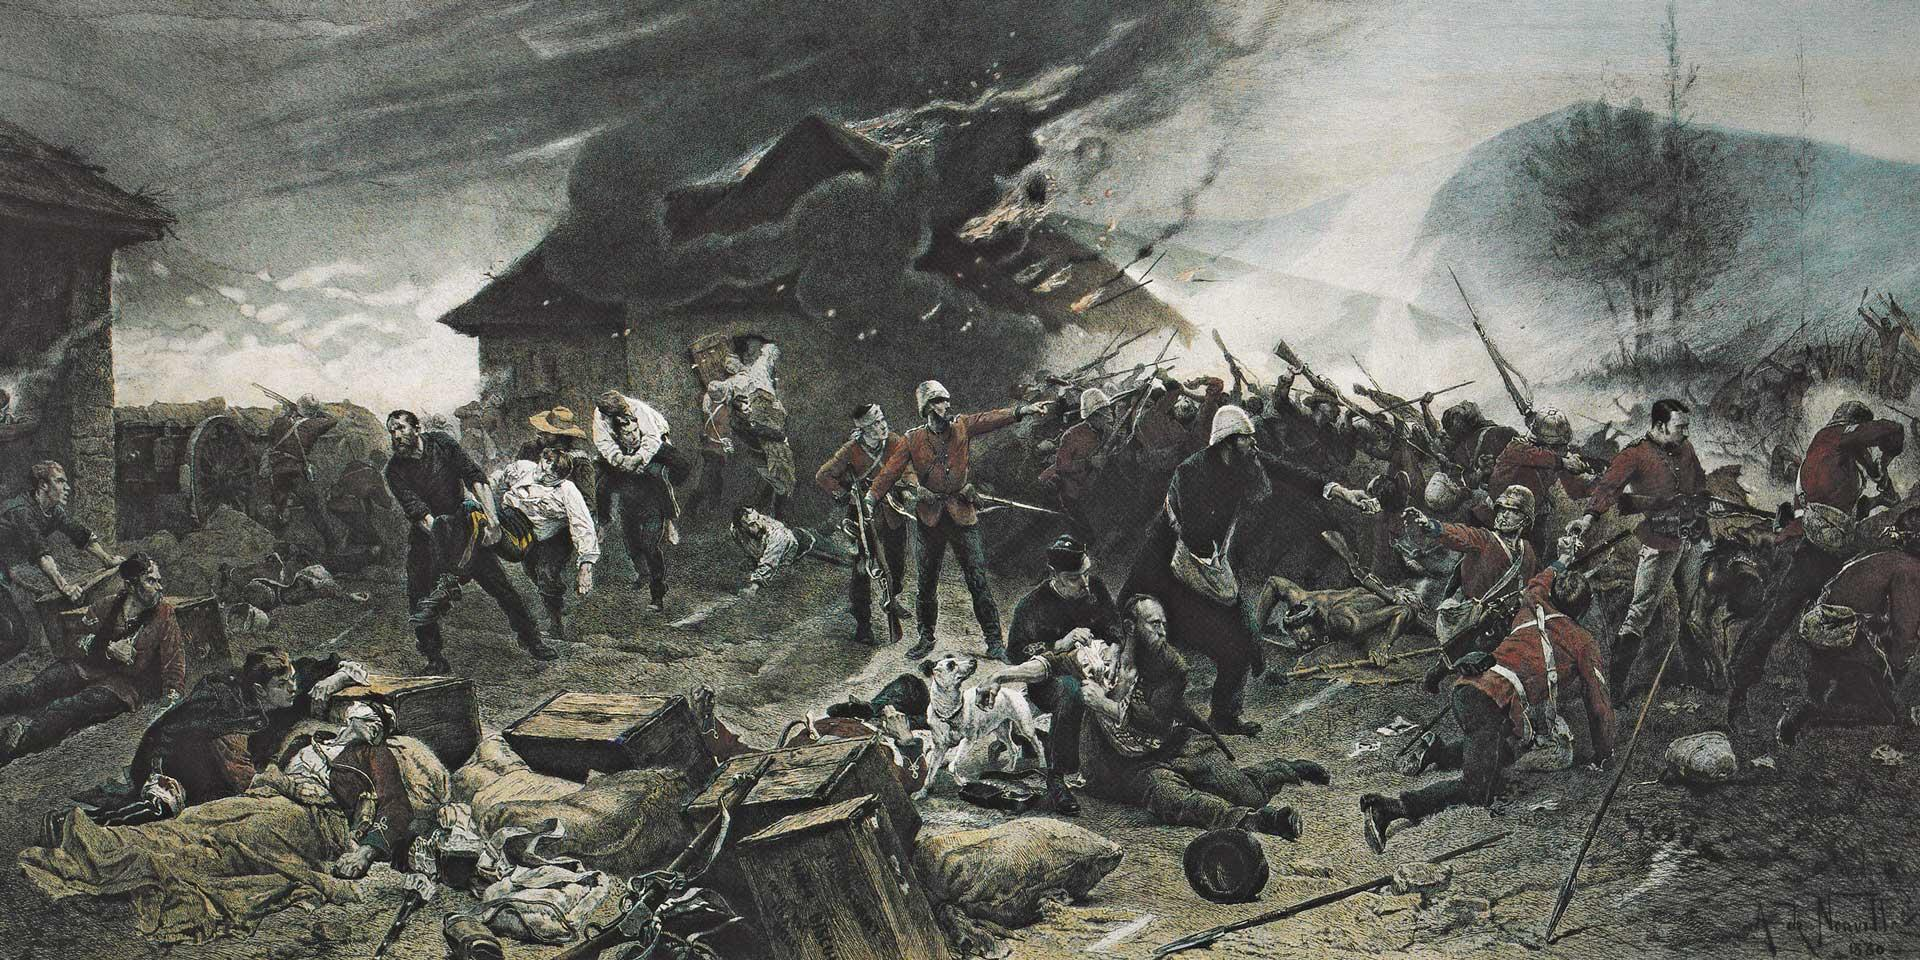 The defence of Rorke's Drift 22-23 January 1879